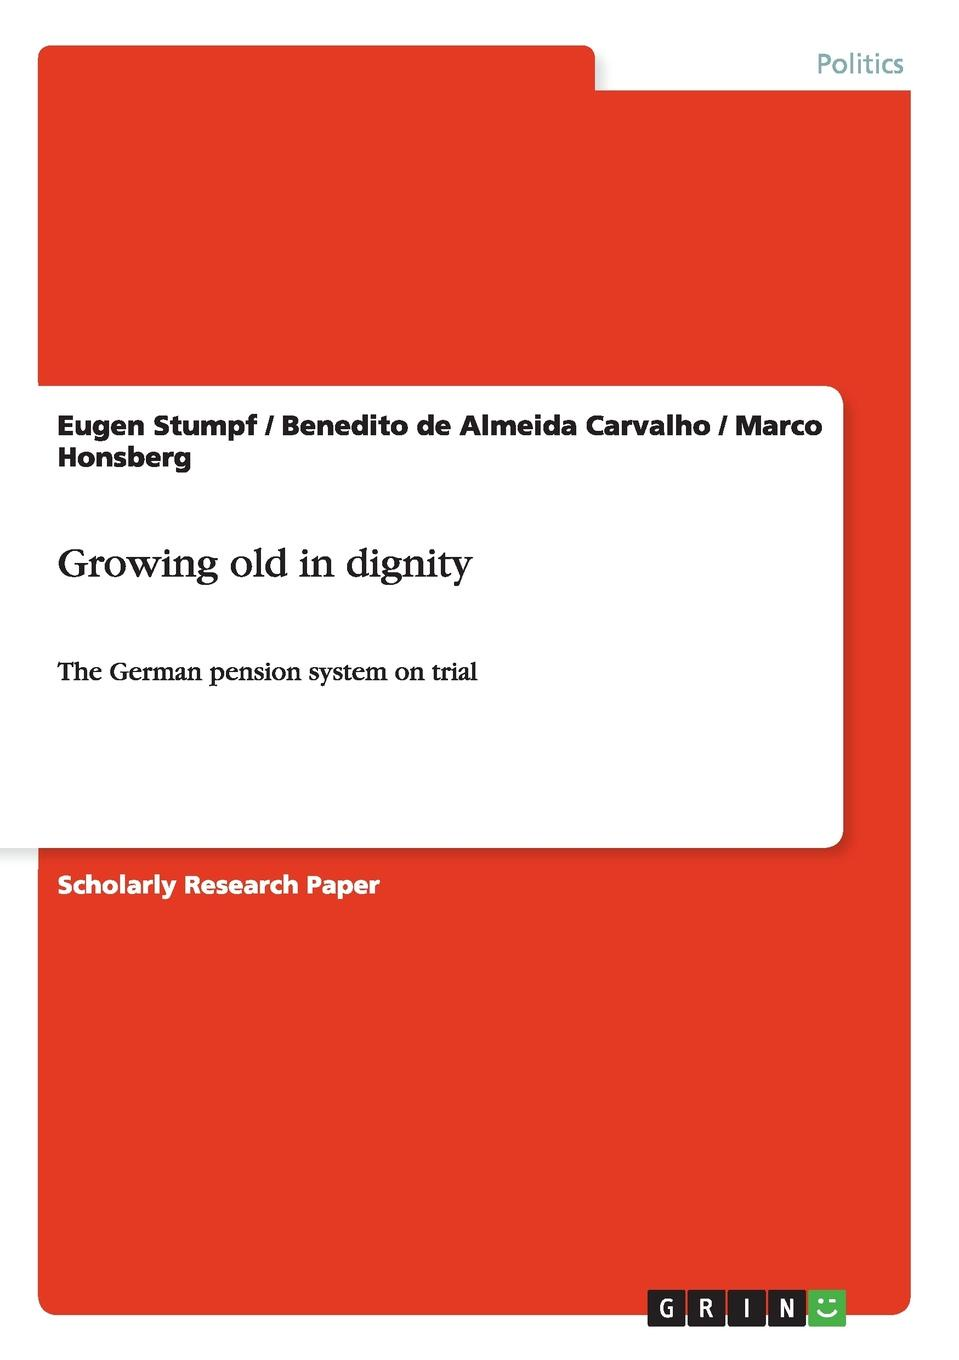 Eugen Stumpf, Benedito de Almeida Carvalho, Marco Honsberg Growing old in dignity the jews in the greek age paper